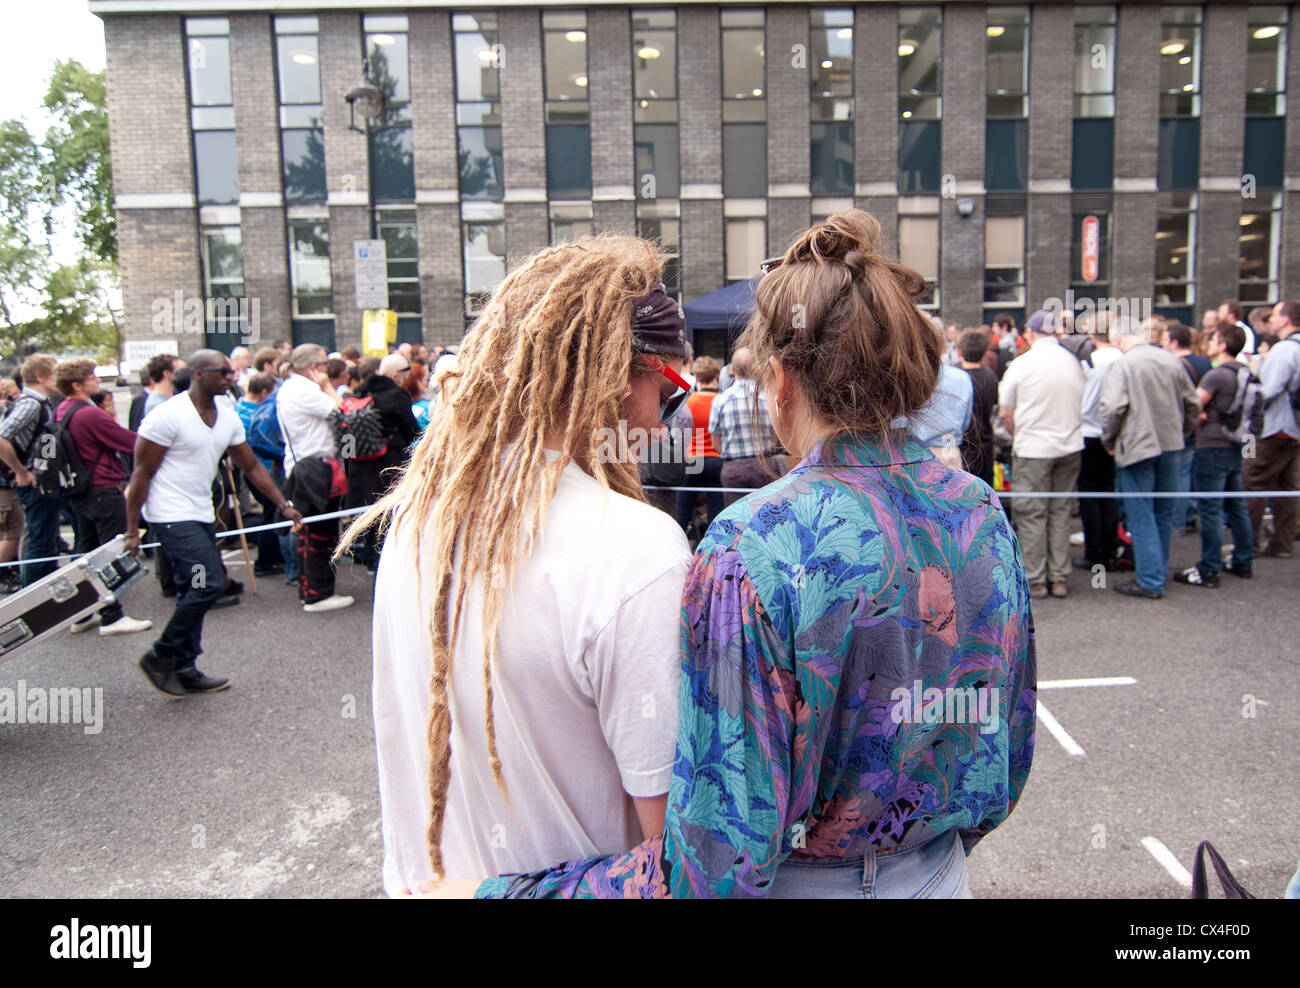 """a couple cuddling whist watching """"Secular Europe Campaign"""" protest rally in central London. - Stock Image"""